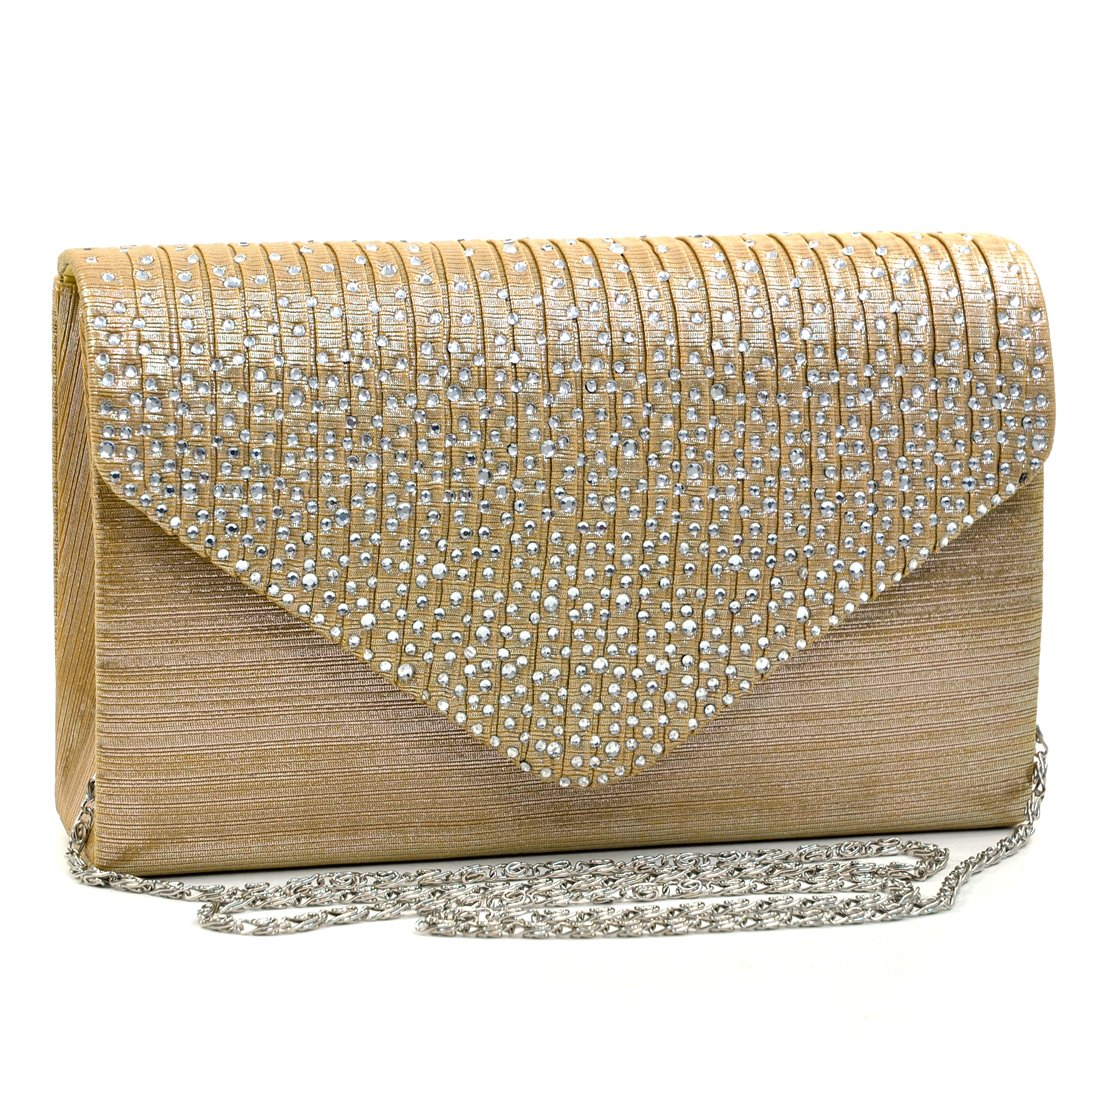 Womens Envelope Flap Clutch Handbag Evening Bag Purse Rhinestone Crystal Glitter Sequin Party Gold